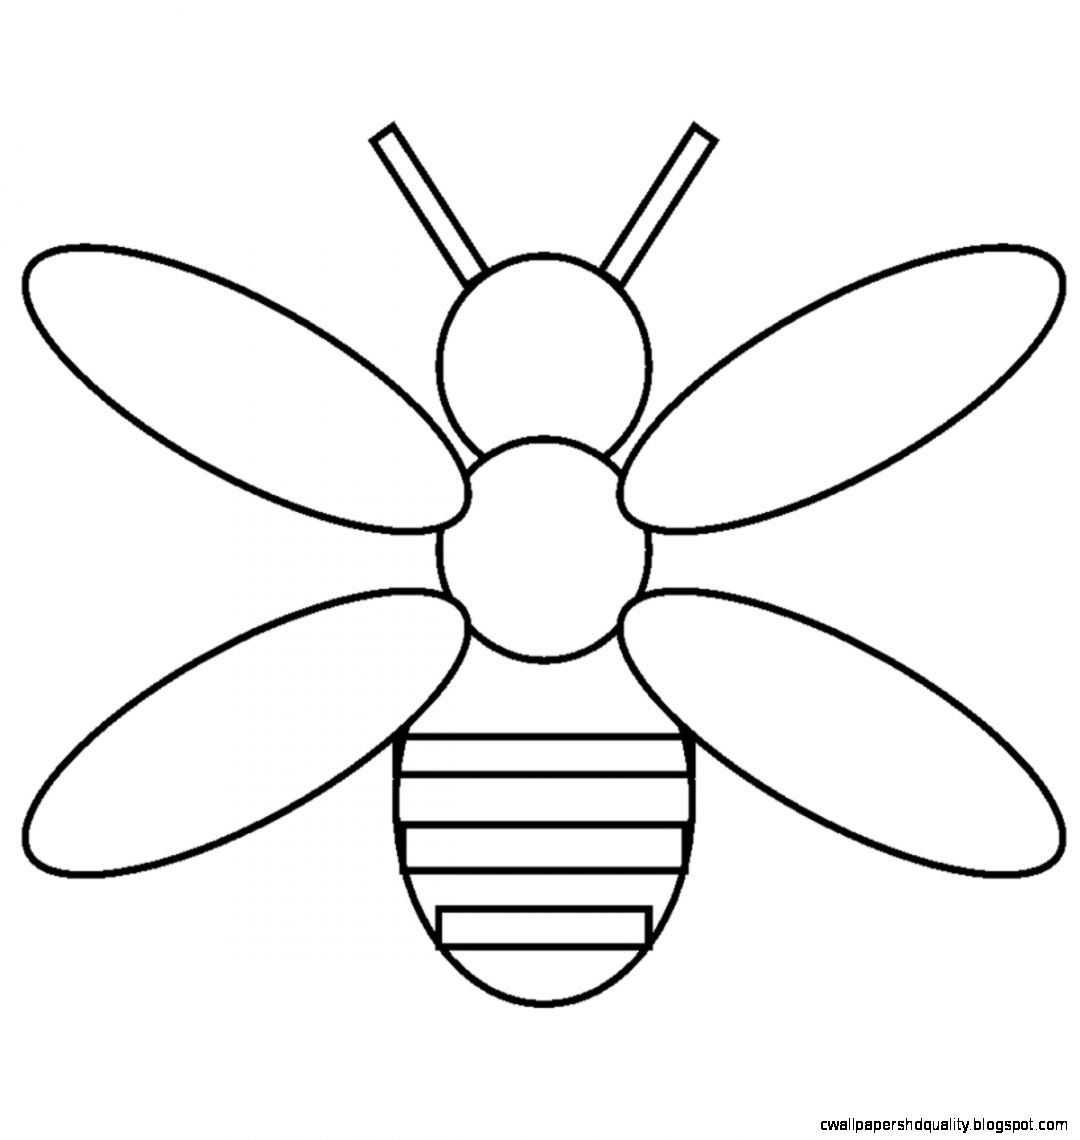 Simple Insect Drawing at GetDrawings.com | Free for personal use ...